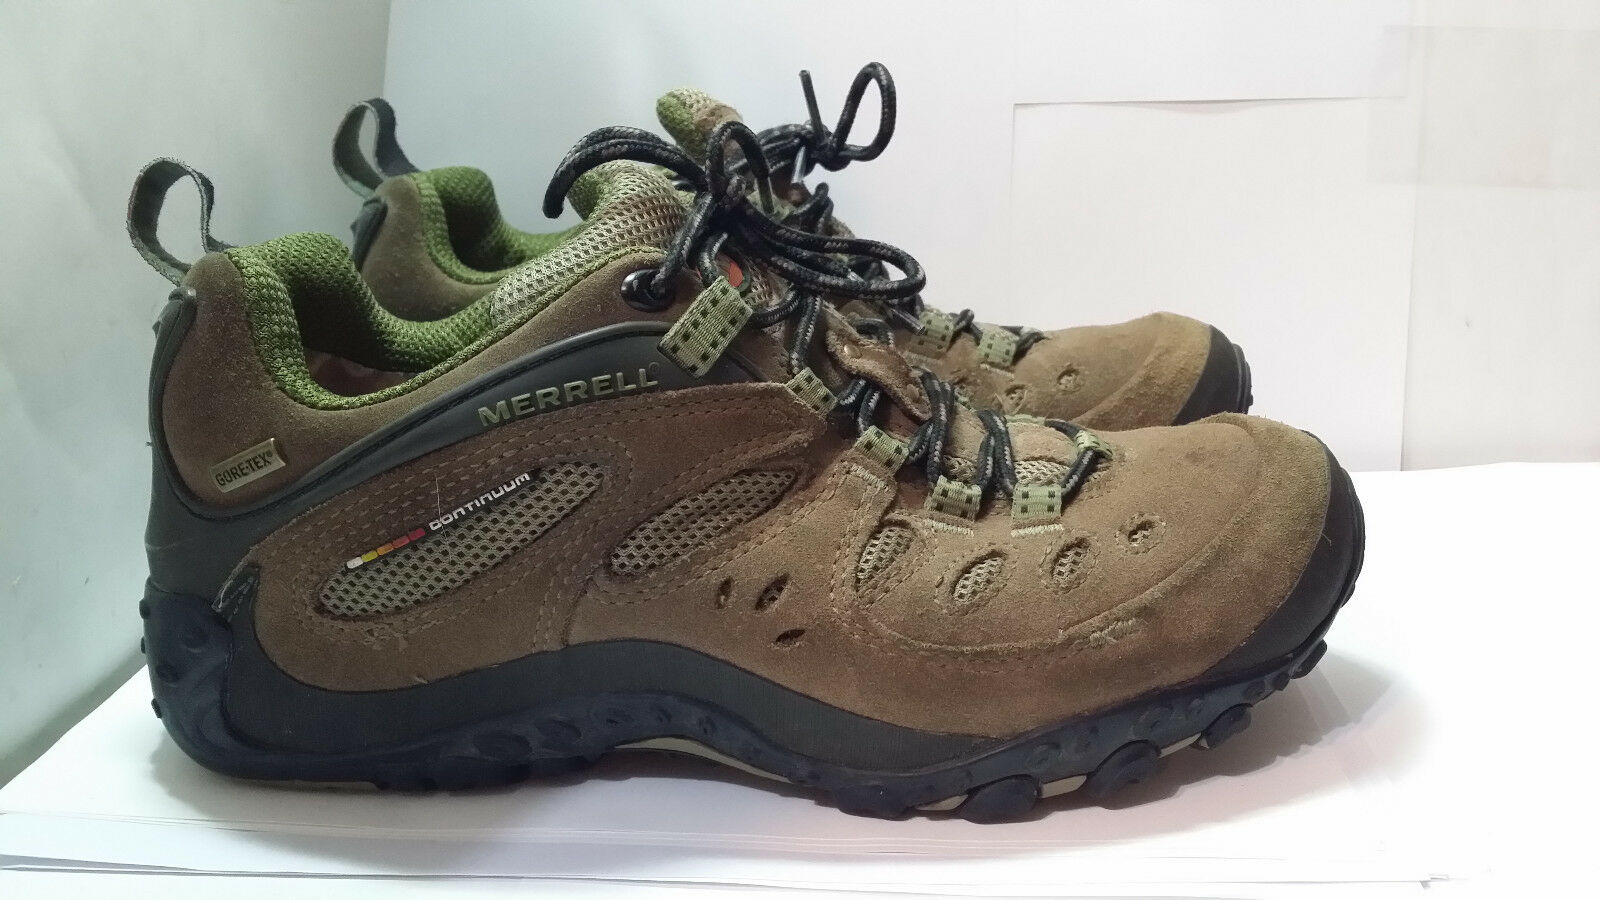 Merrell Women's Gore-Tex XCR Continuum Chameleon ARC Hiking shoes   Boots US 8.5